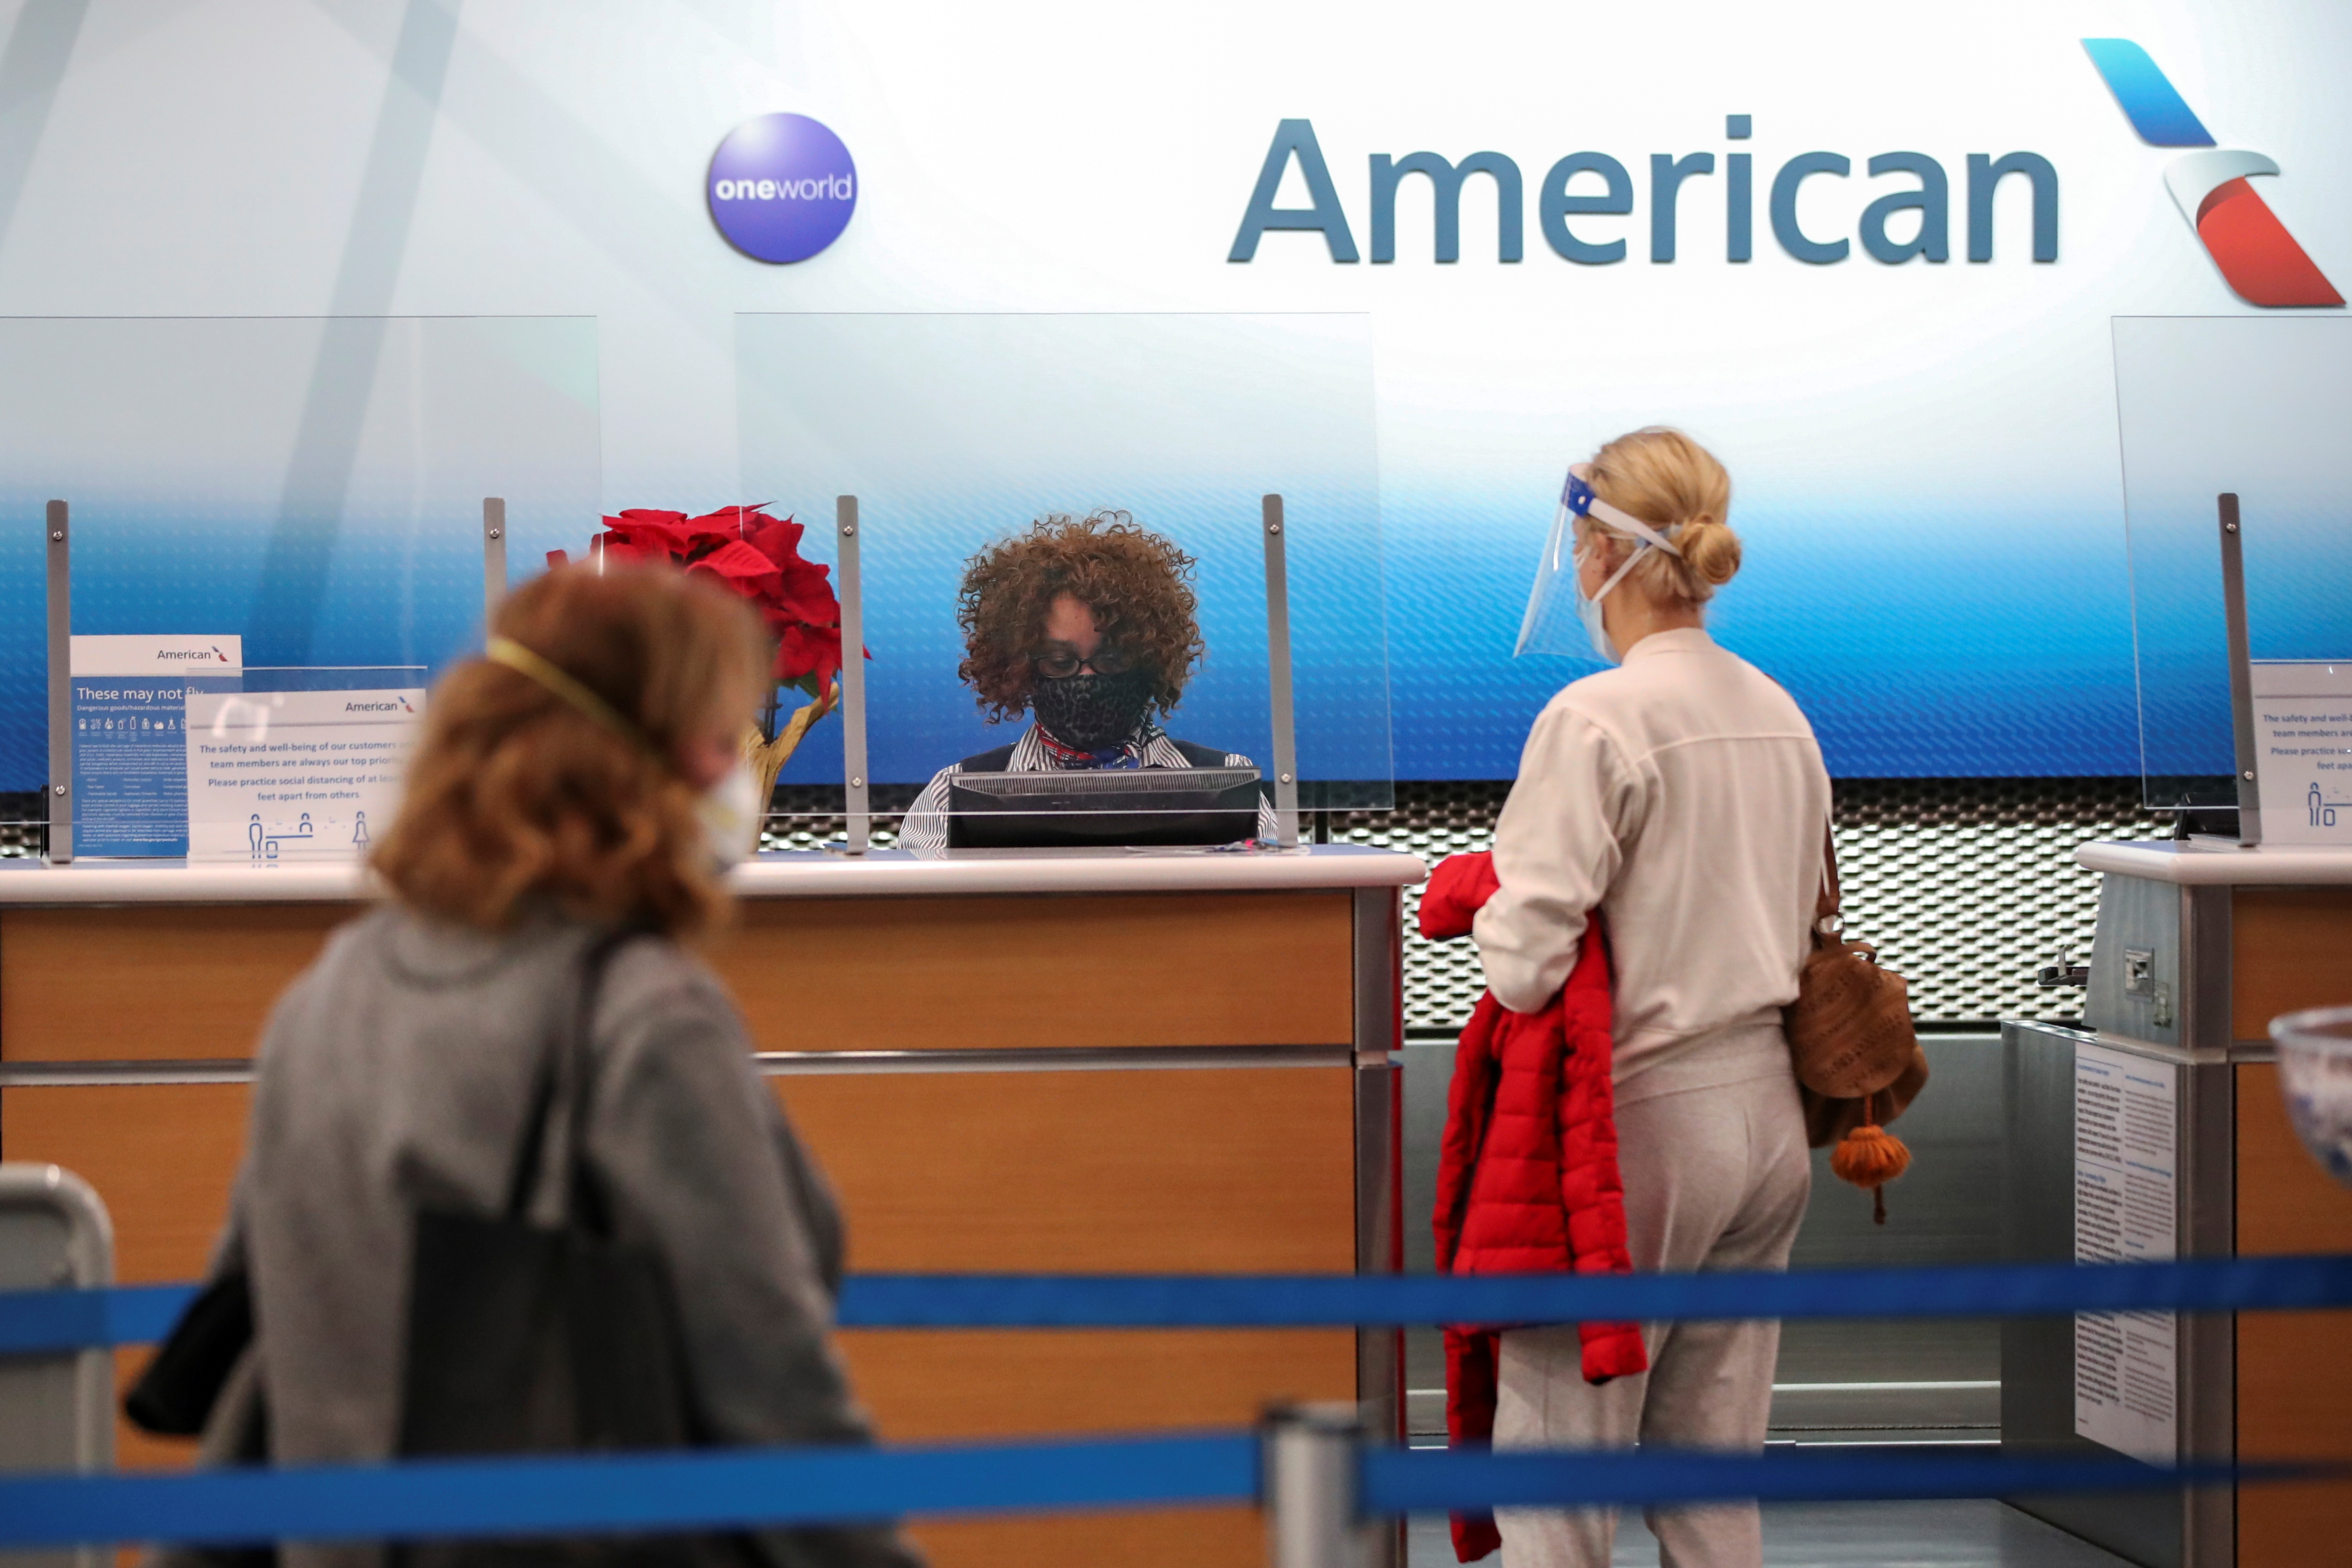 American Airlines agent helps a customer to check in for her flight at O'Hare International Airport ahead of the Thanksgiving holiday during the coronavirus disease (COVID-19) pandemic, in Chicago, Illinois, U.S. November 25, 2020. REUTERS/Kamil Krzaczynski